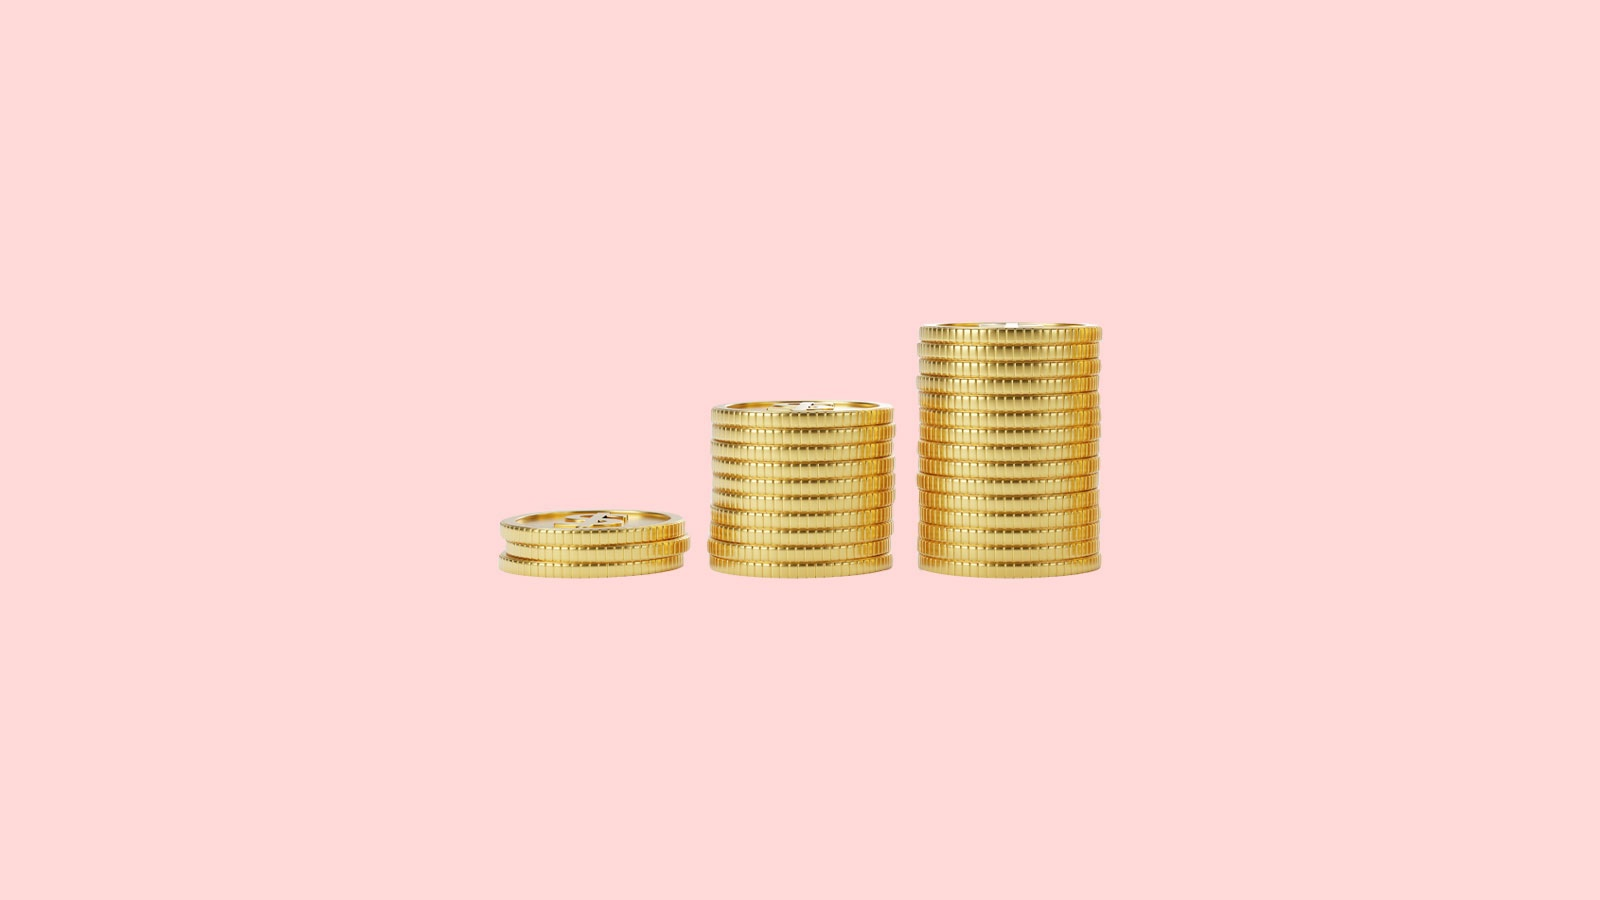 3 coin stacks on a pink background